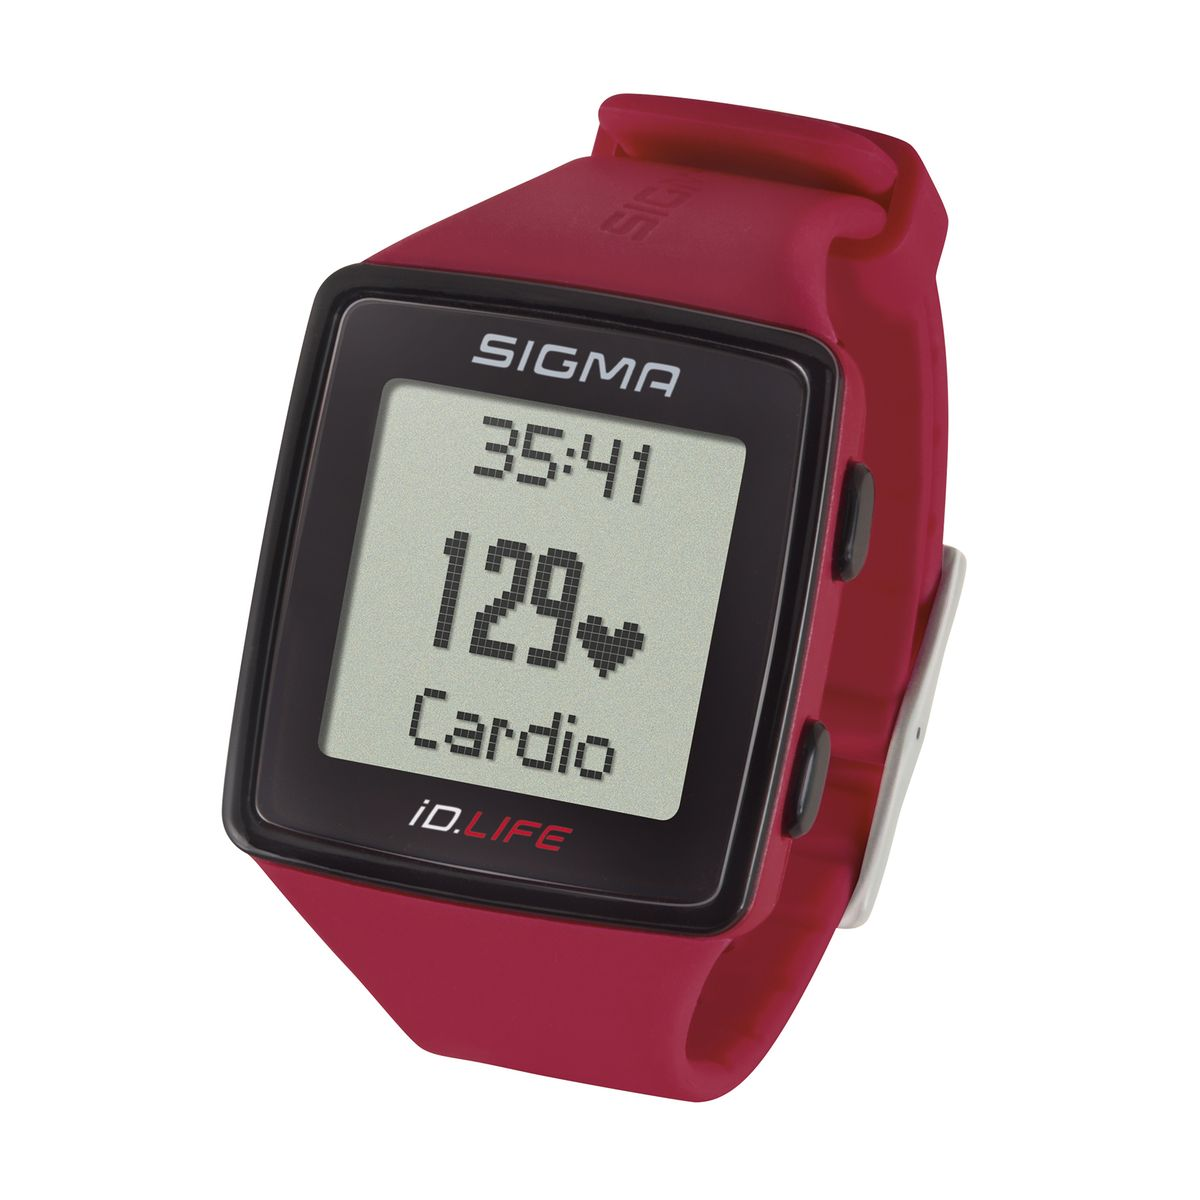 Sigma ID.LIFE heart rate monitor watch incl. activity tracker | Heart rate monitors